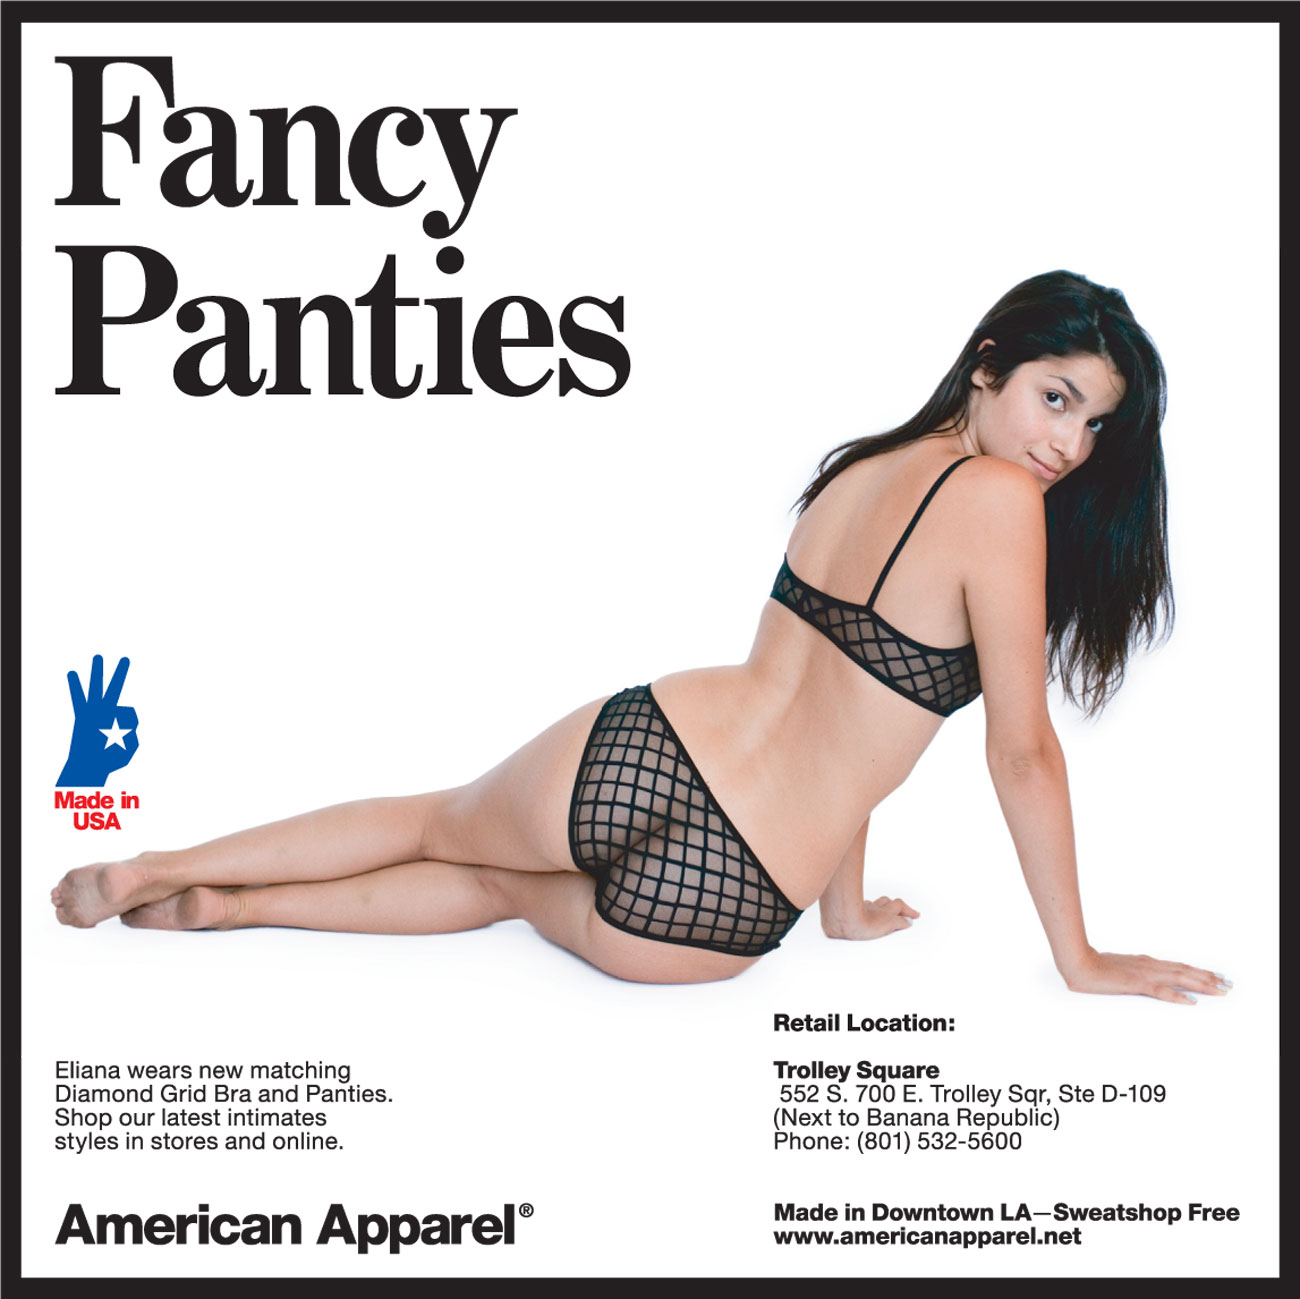 American Apparel Sex Ads. November 5th, 2010 by Karen One Response